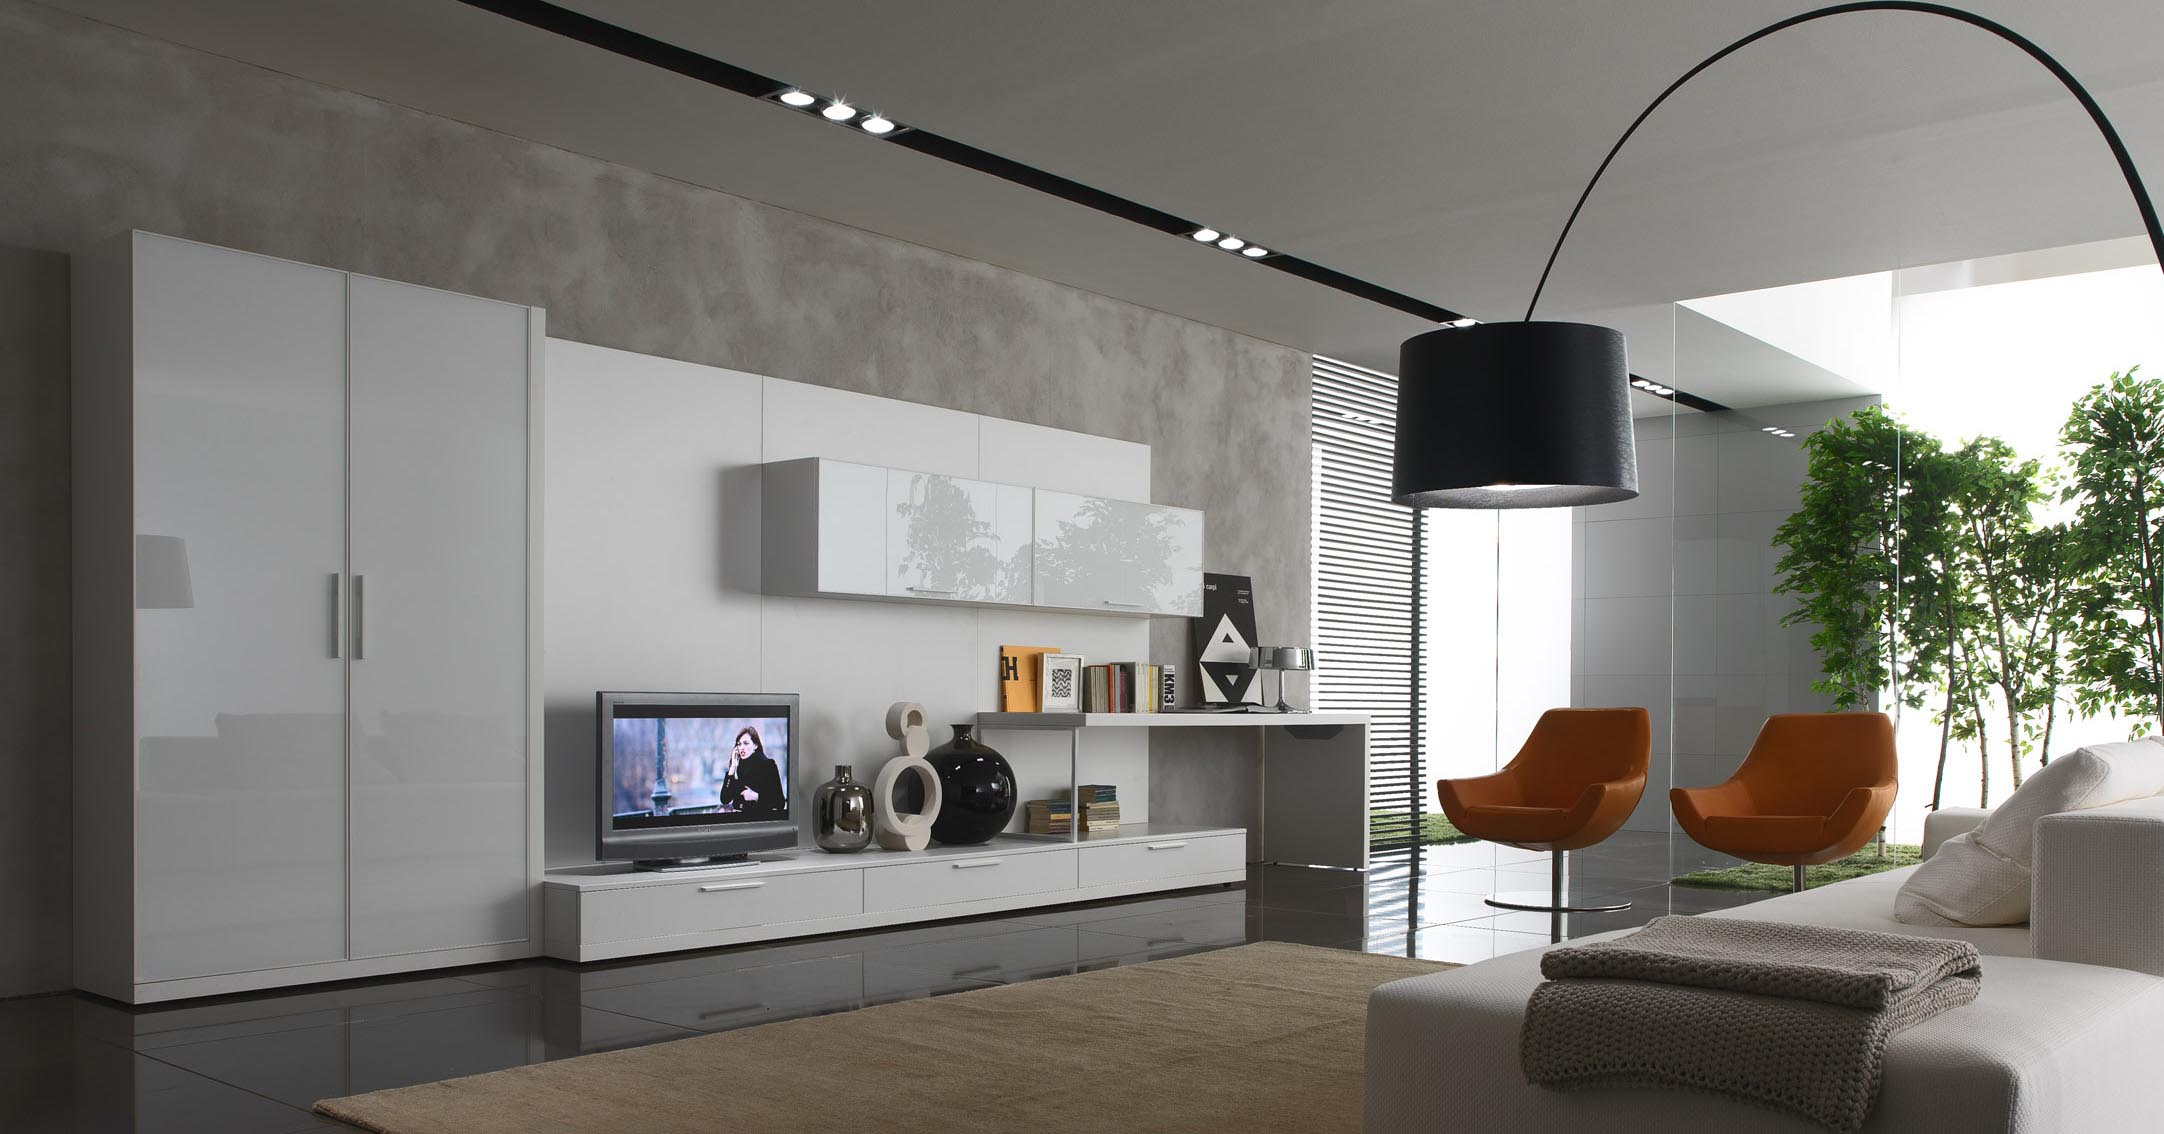 Fascinating Orange Chairs and White Chaise Placed in Contemporary Living Room with Black Arc Lamp